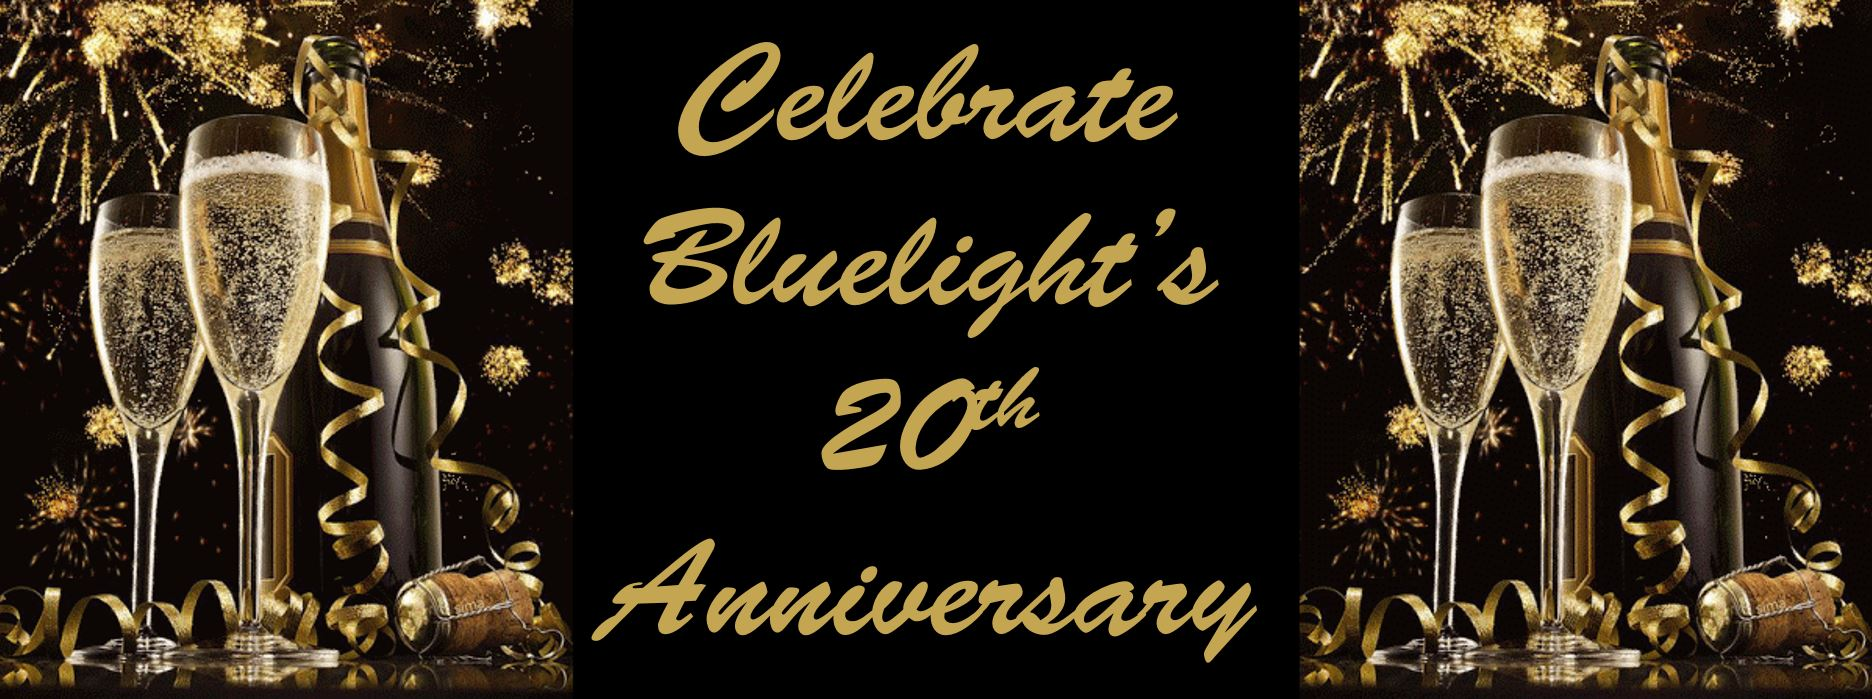 Bluelights 20th Anniversary